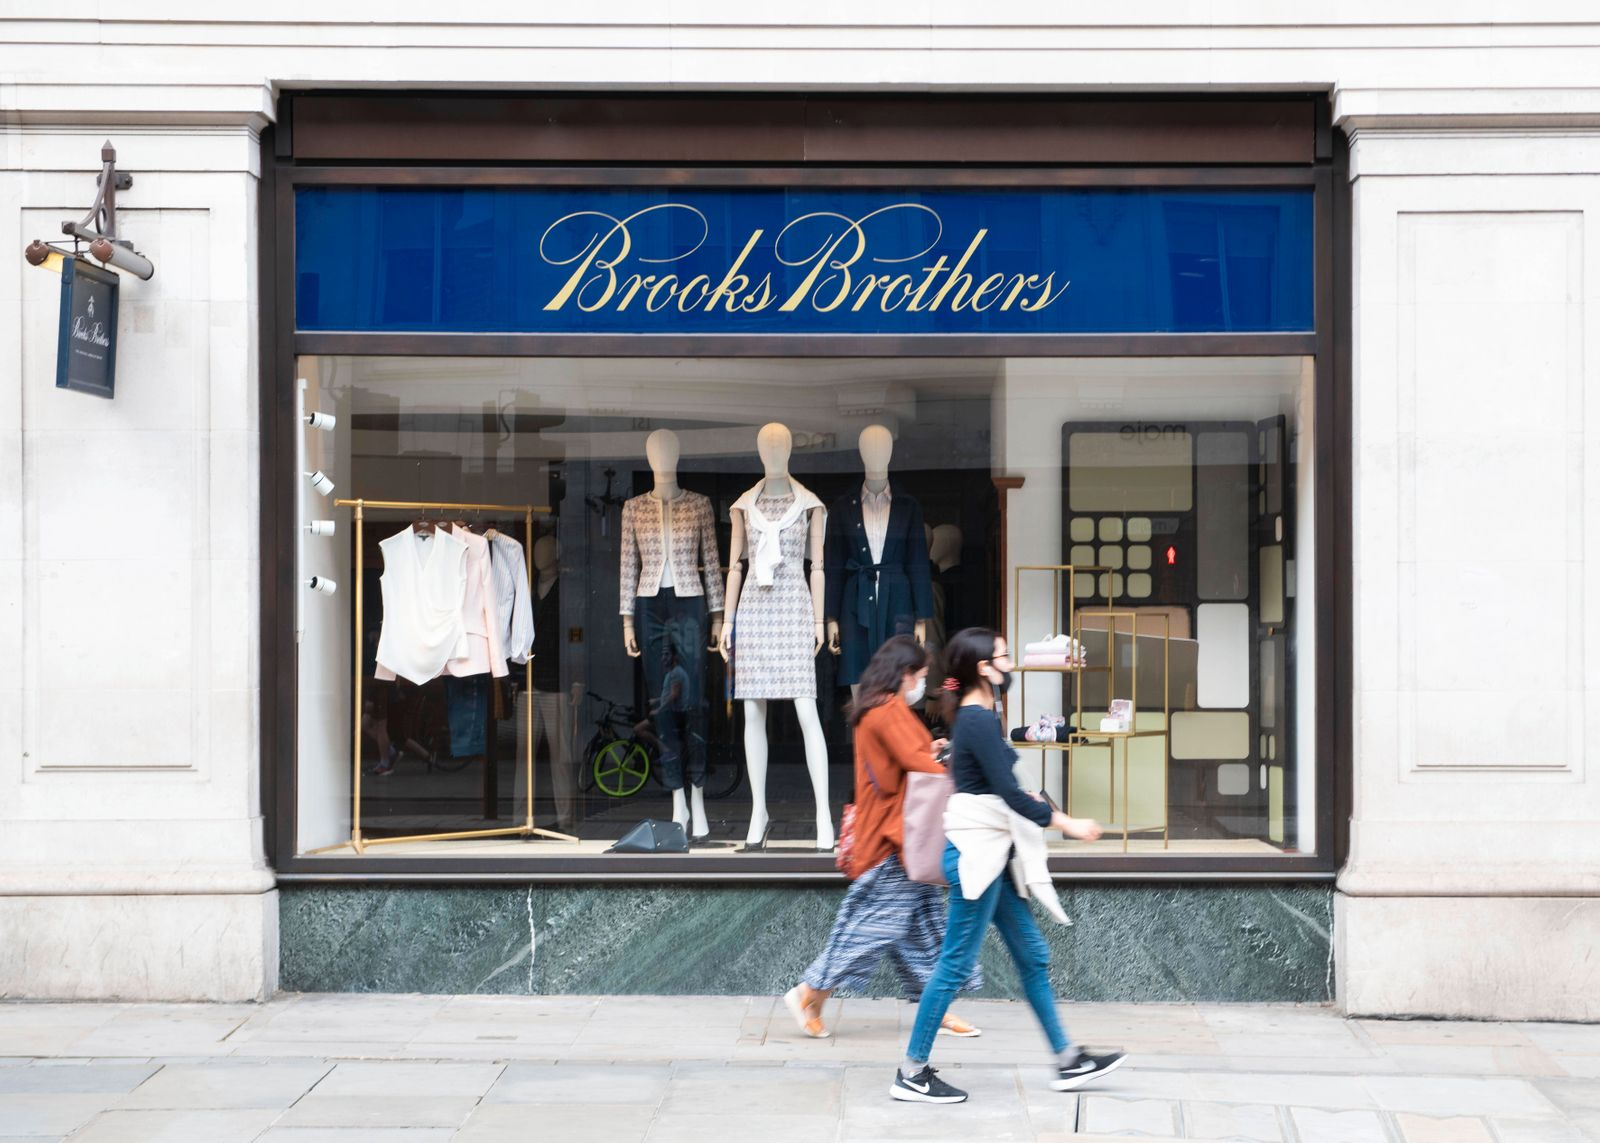 Coronavirus High St Economy View of Brooks Brothers clothing store which is struggling financially due to the Coronavir